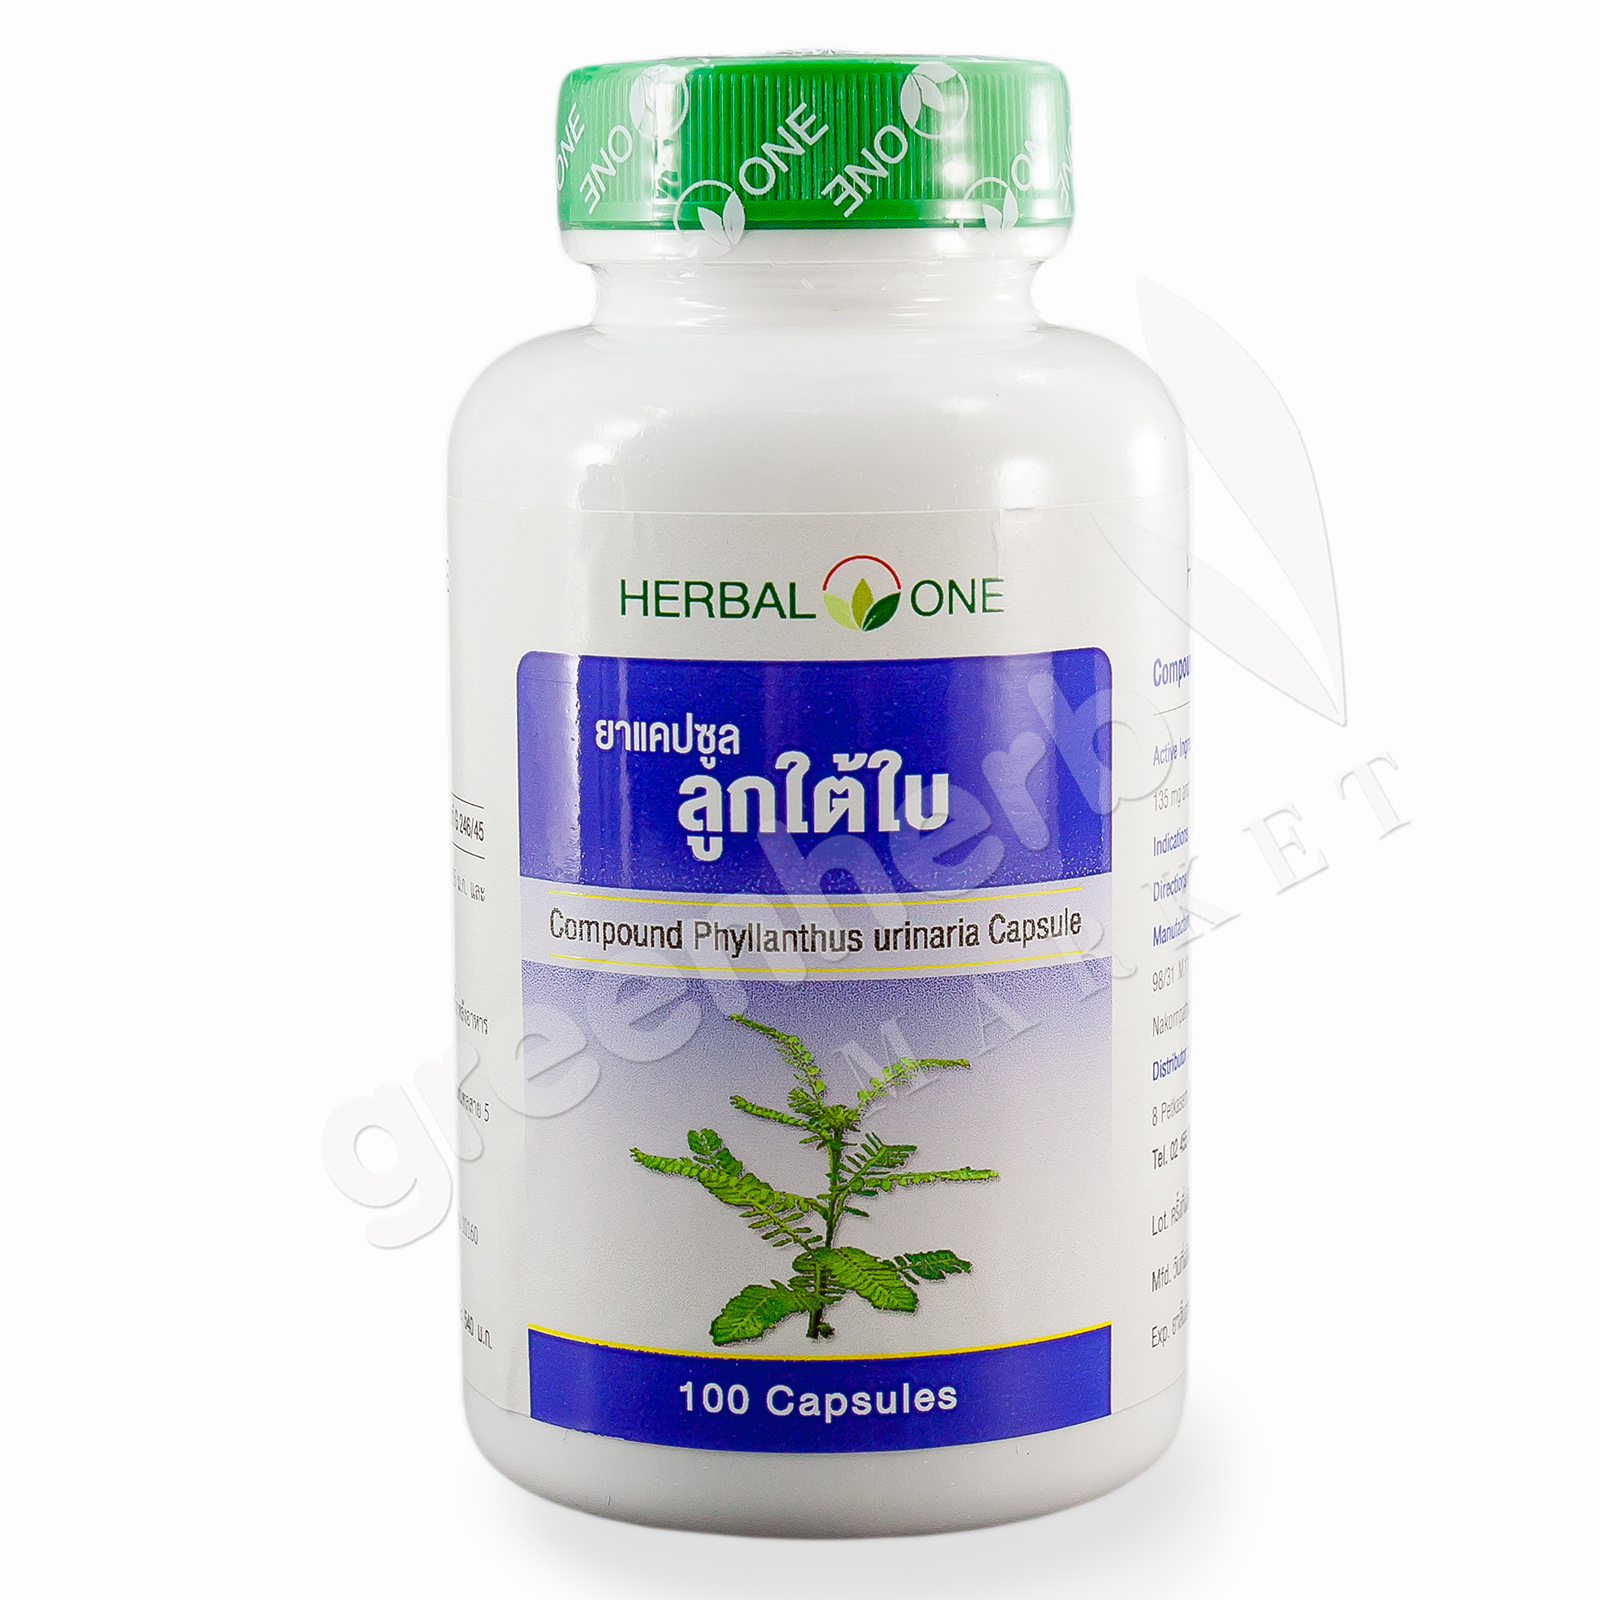 Compound phyllanthus urinaria Capsule - Herbal One, OuayUn Osoth